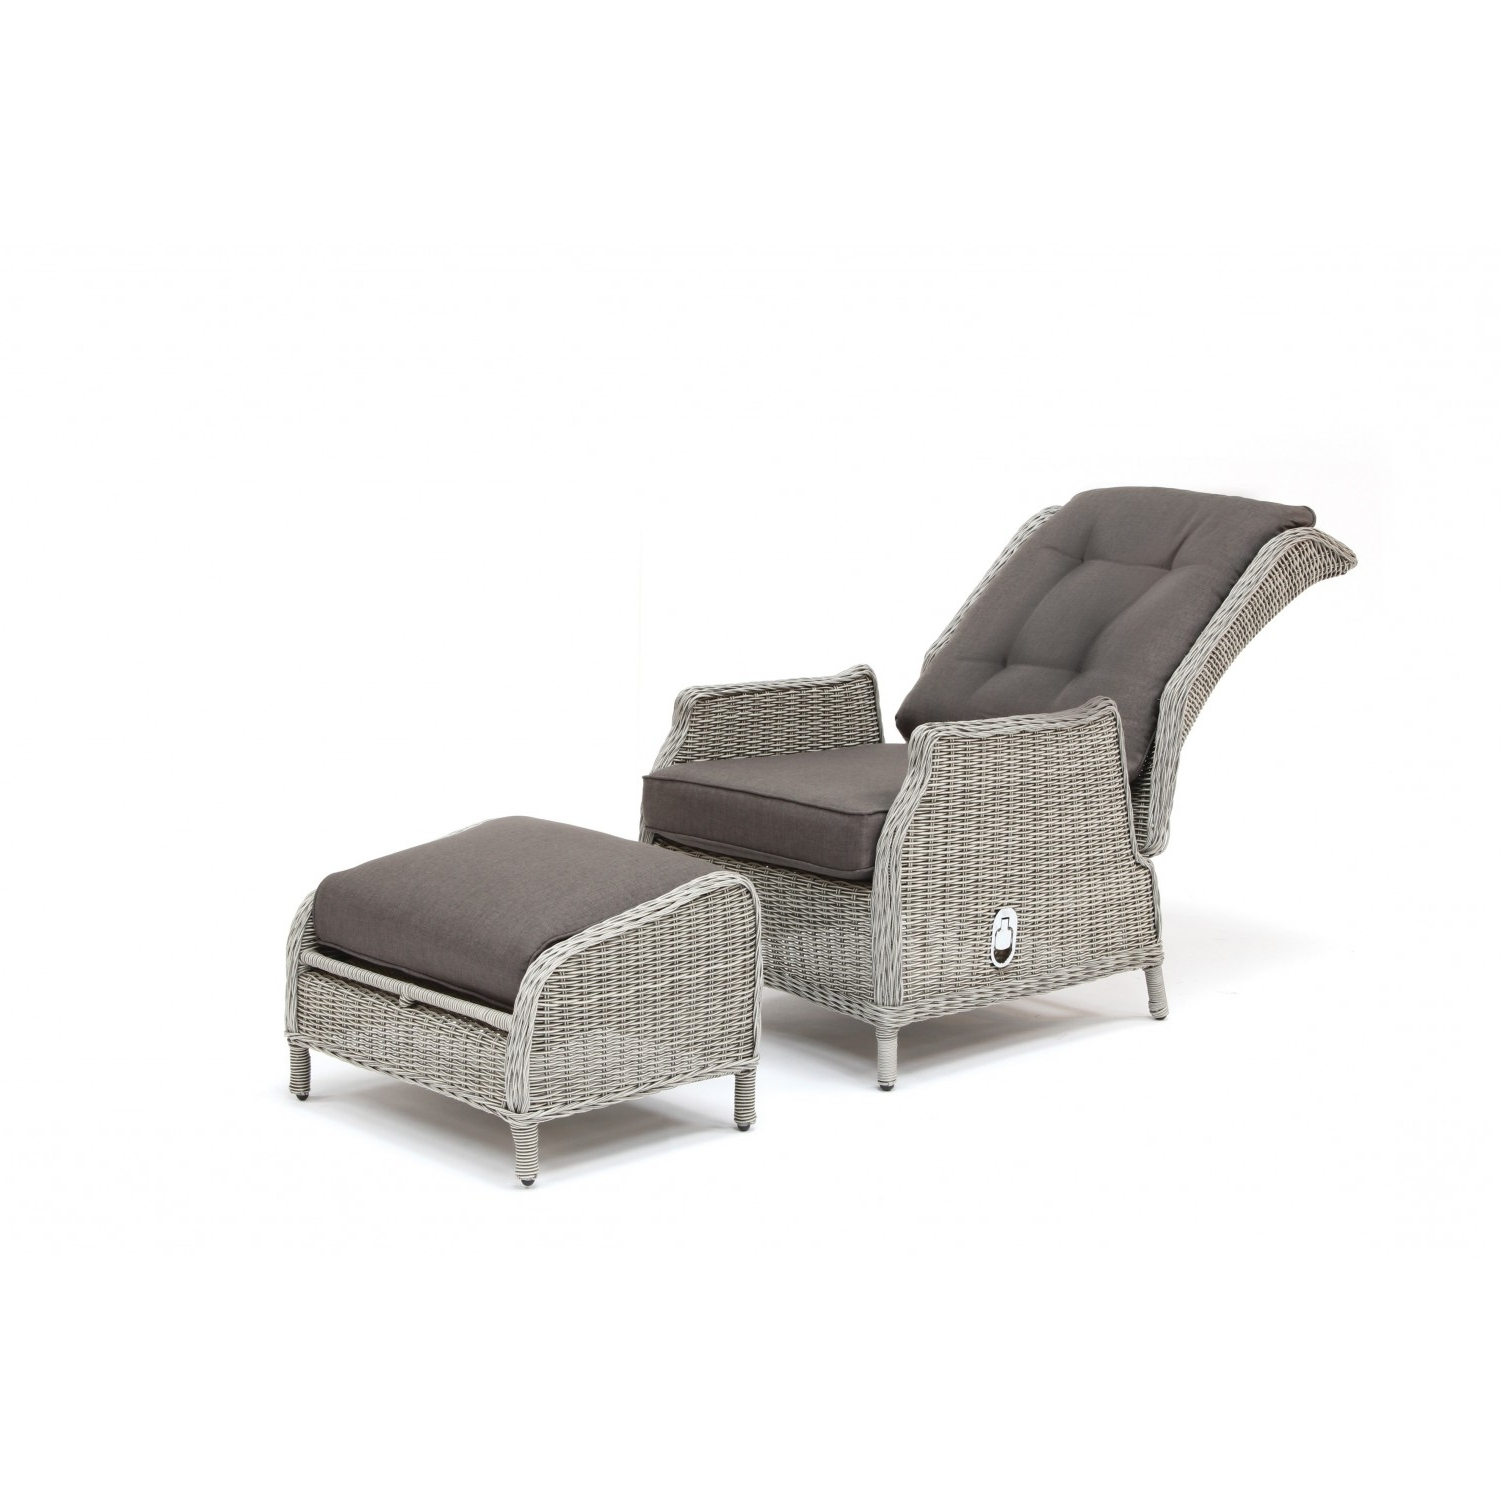 Most Recently Released Kettler Jarvis Recliner With Footstool – White Wash Inc Taupe Cushions Pertaining To Kettler Chaise Lounge Chairs (View 12 of 15)